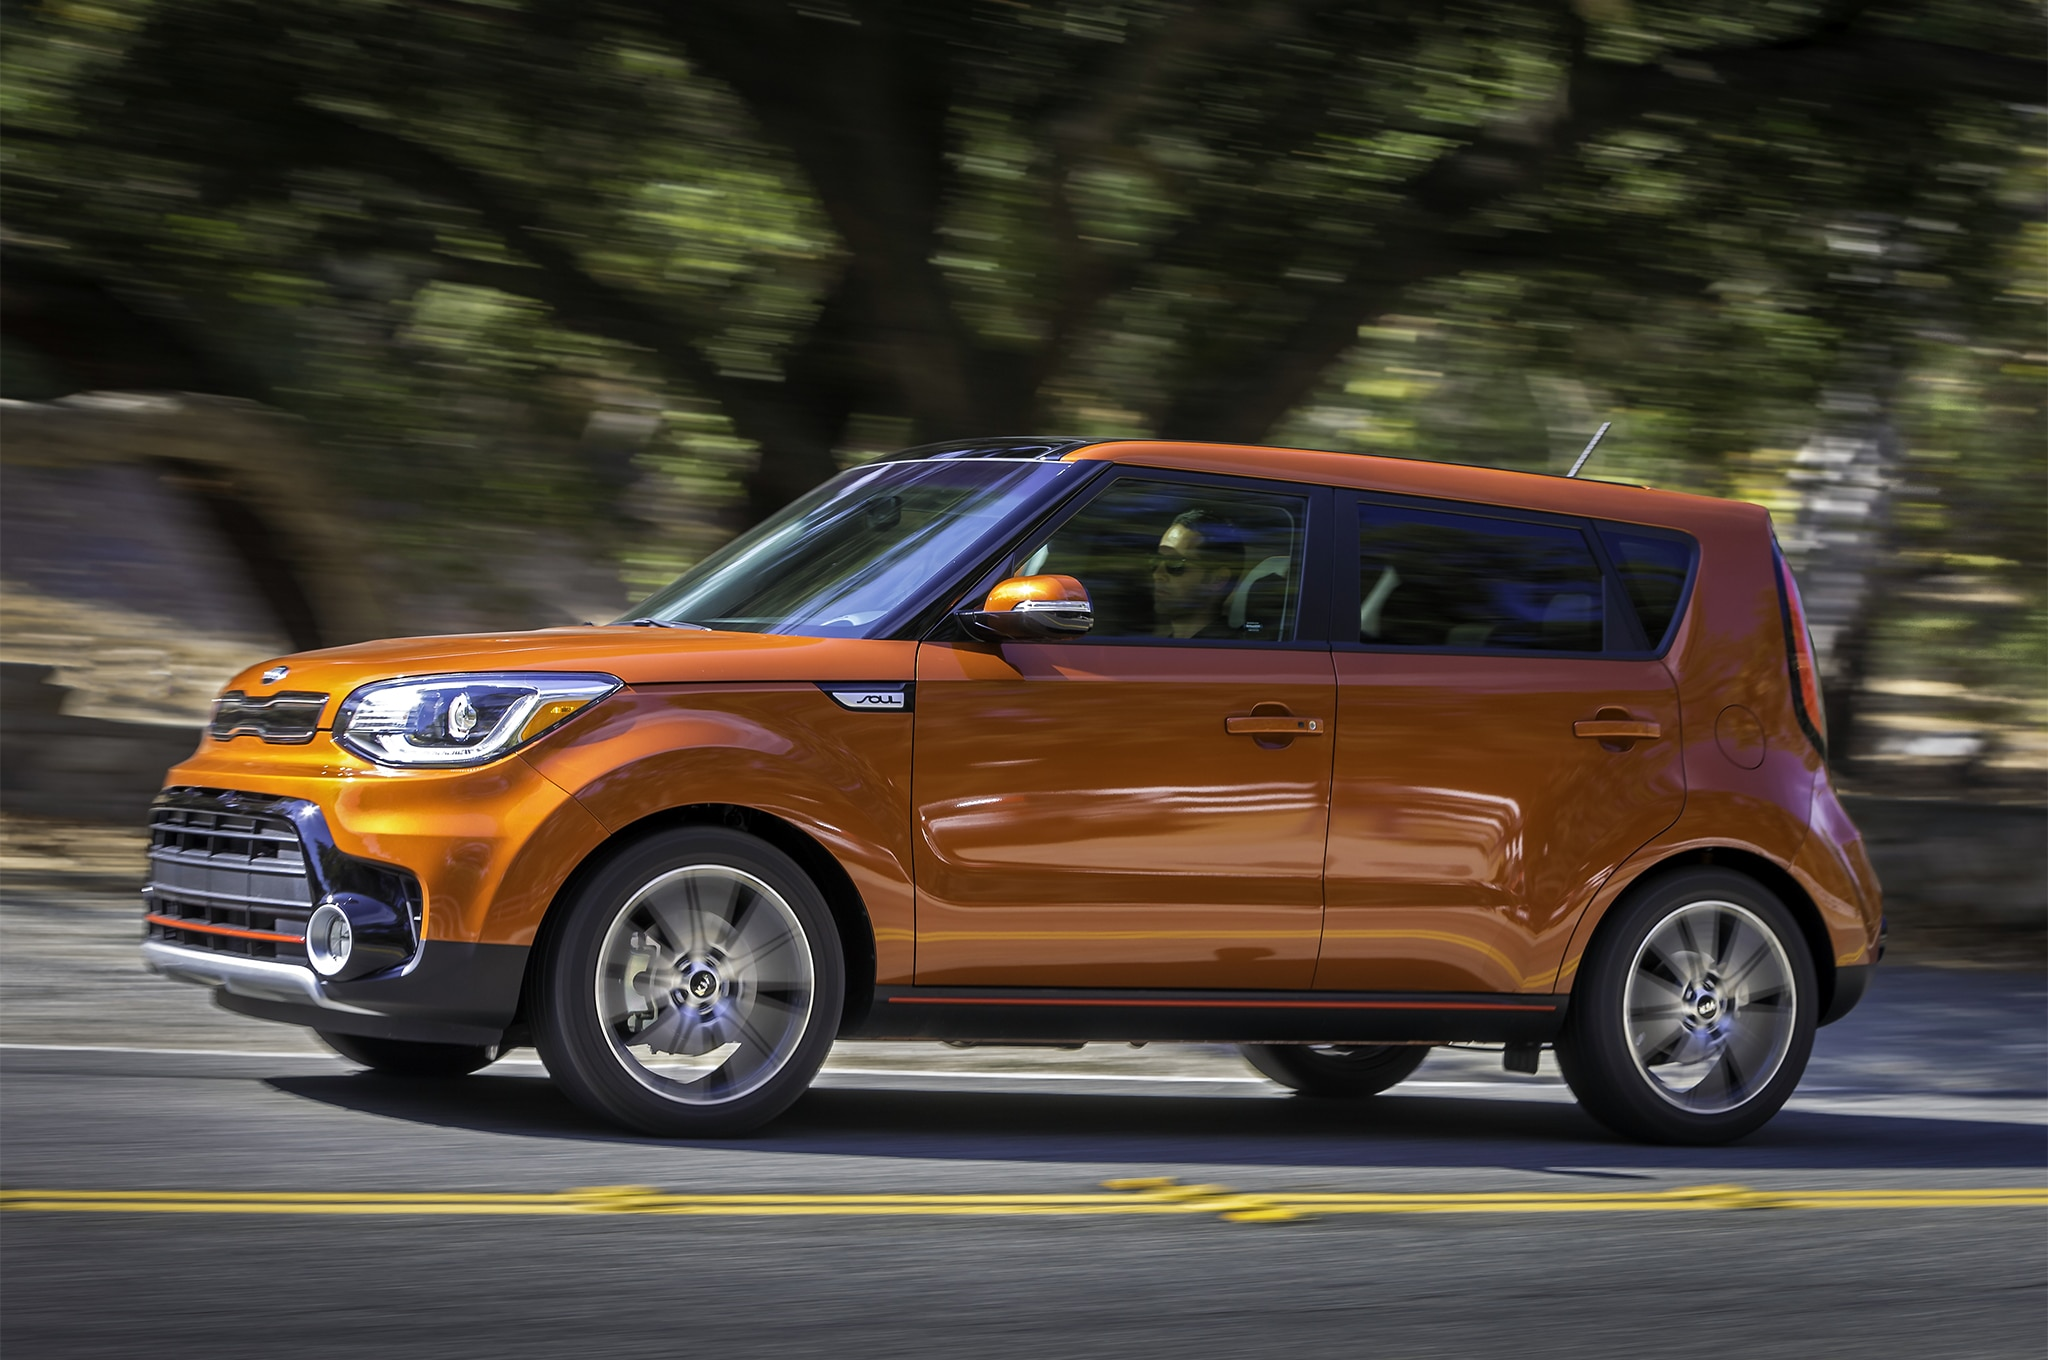 2017 Kia Soul Turbo side in motion